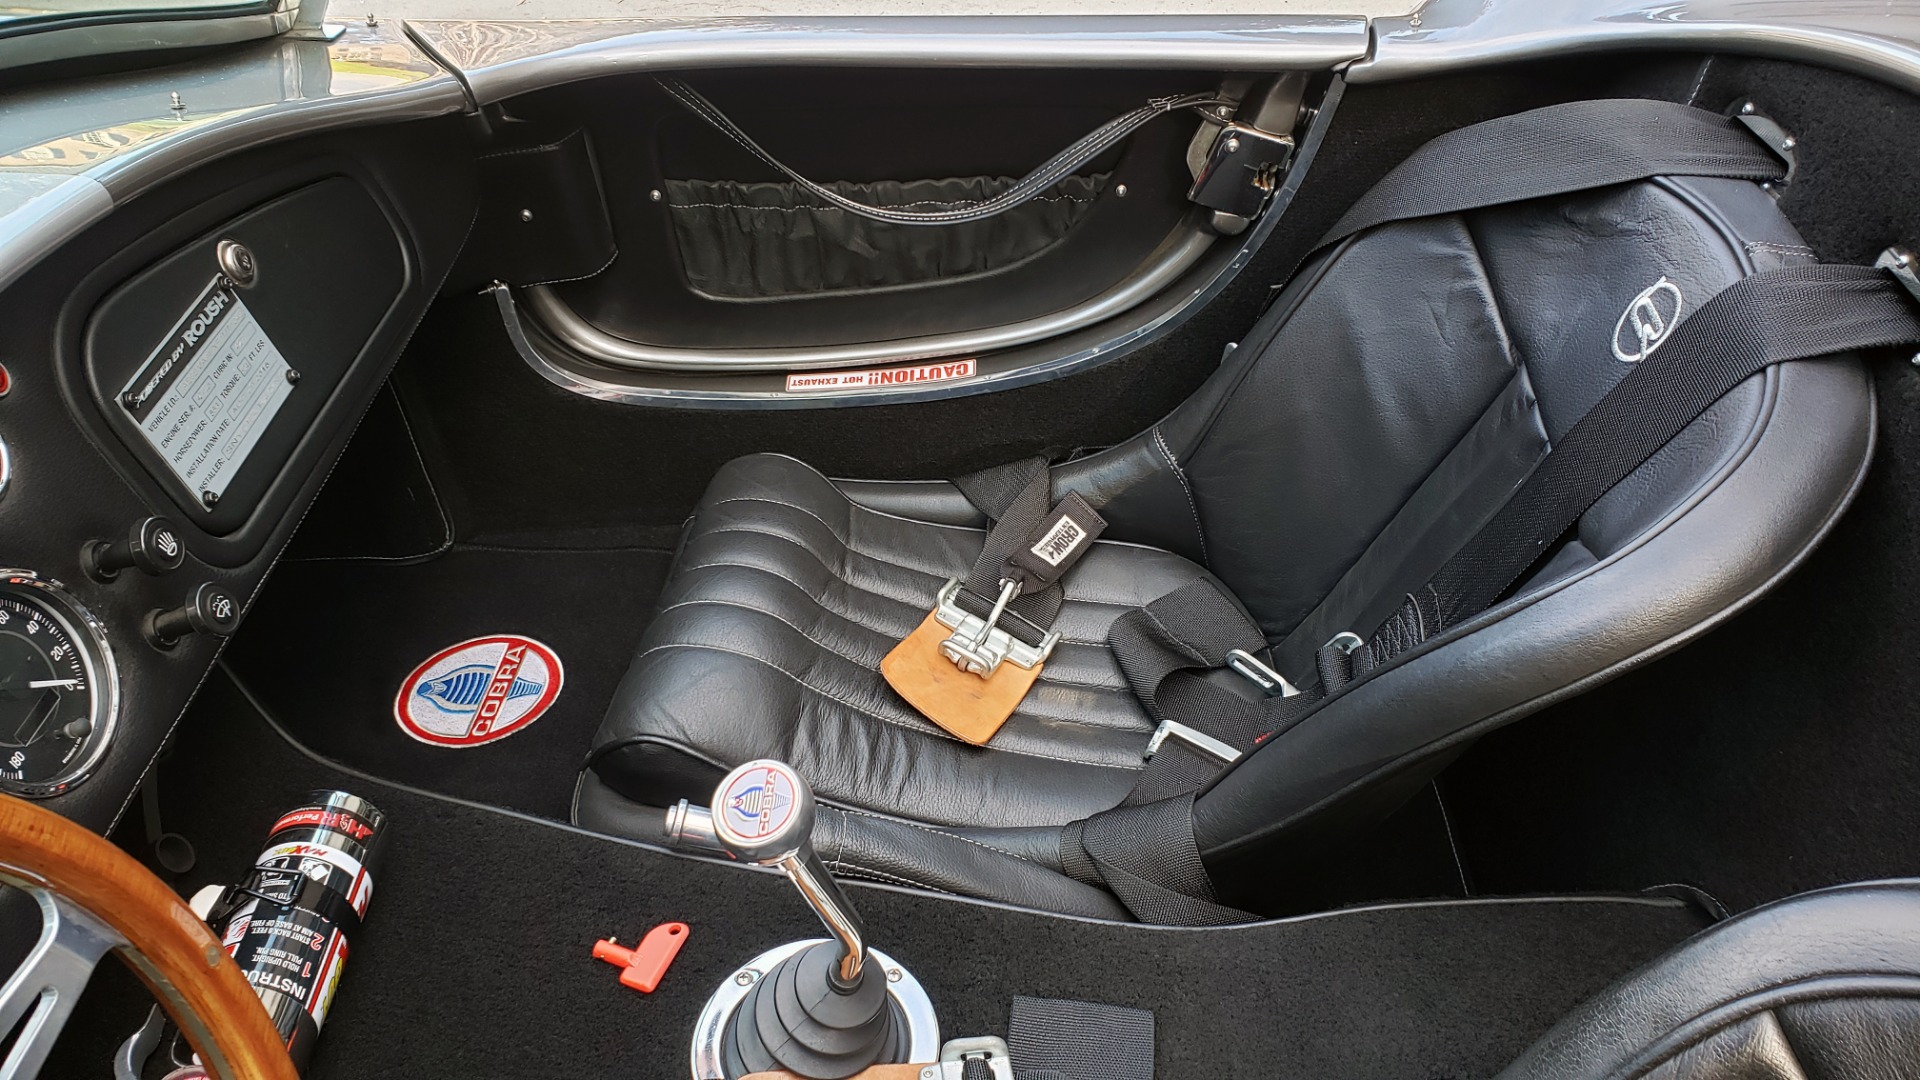 Used 1965 Ford COBRA 427 ROADSTER BY BRACKDRAFT RACING ROUSH 553HP V8 / TREMEC 6-SPD / PWR STRNG for sale $74,999 at Formula Imports in Charlotte NC 28227 65